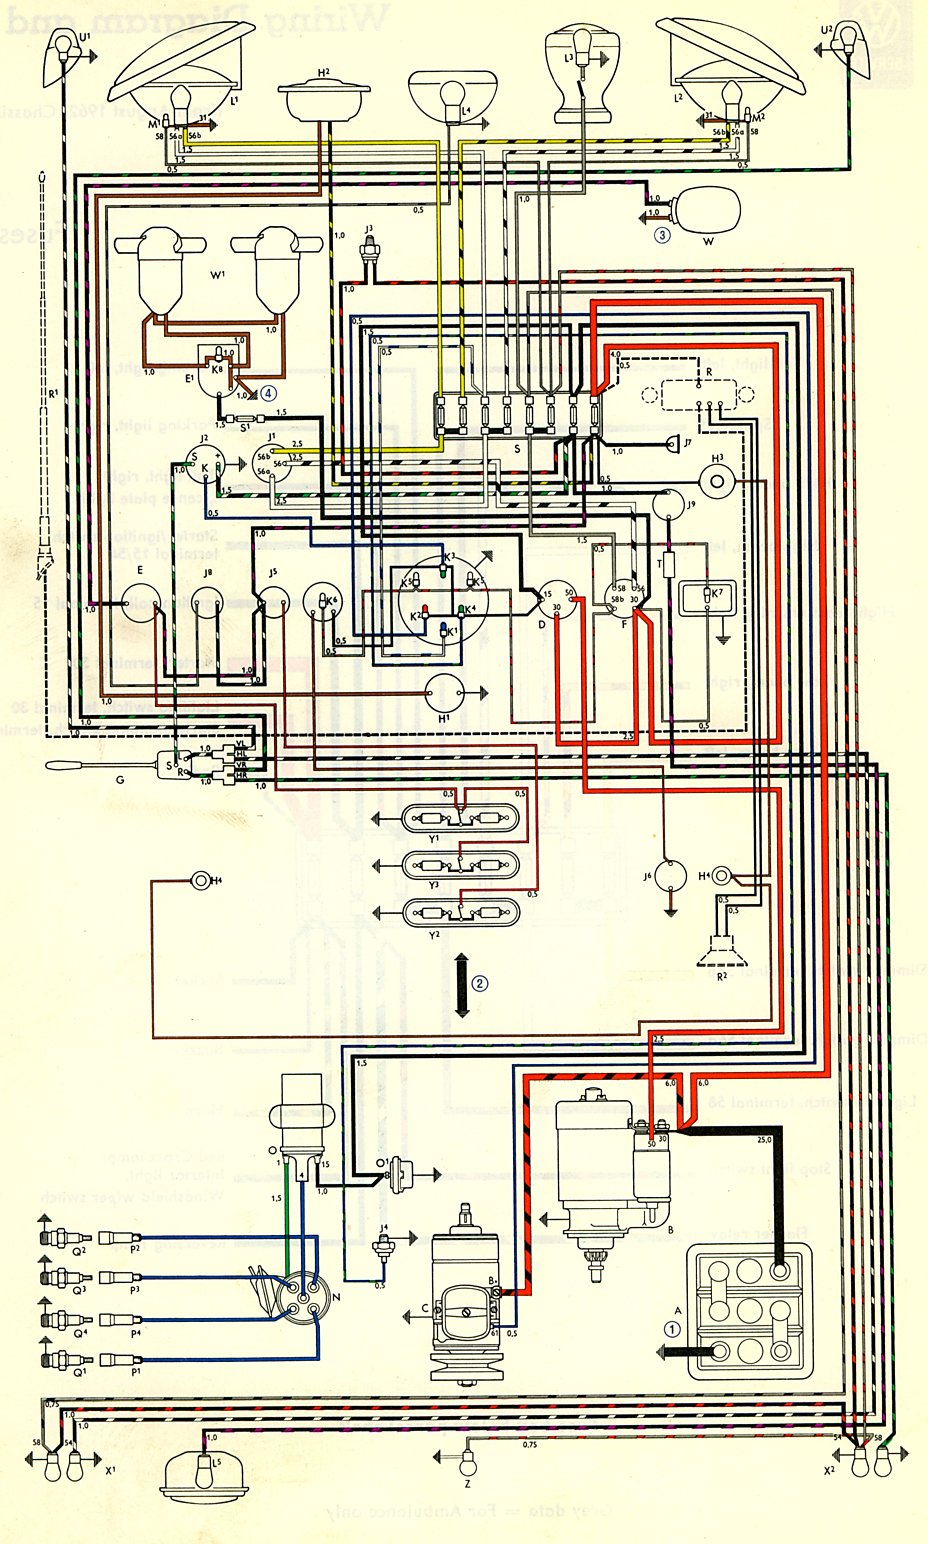 1963 Bus Wiring diagram – Dodge Rv Wiring Diagram